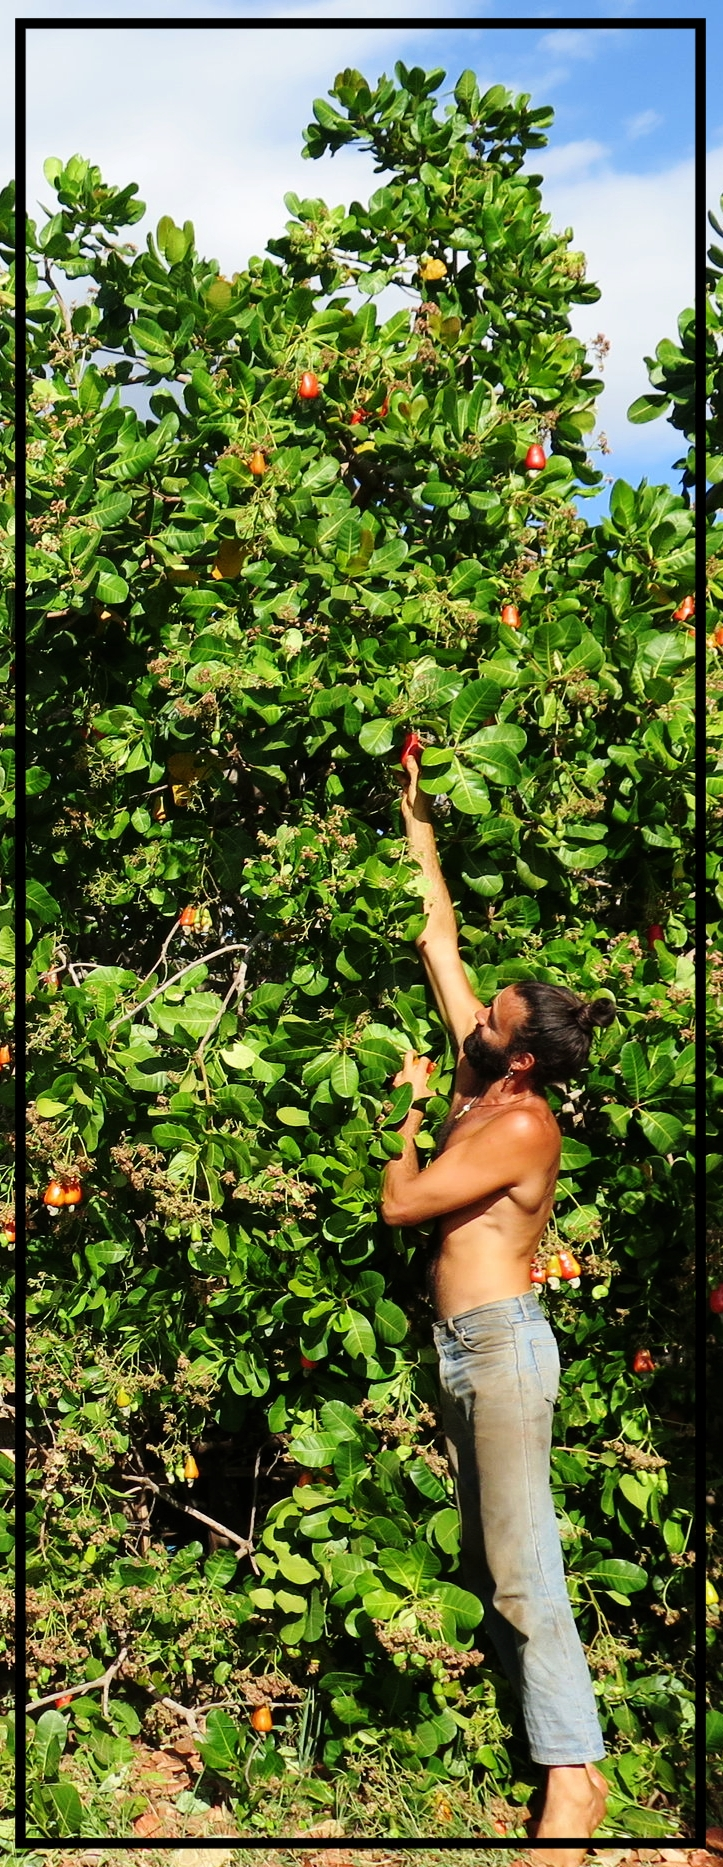 Federico reaches for a ripe cashew fruit.